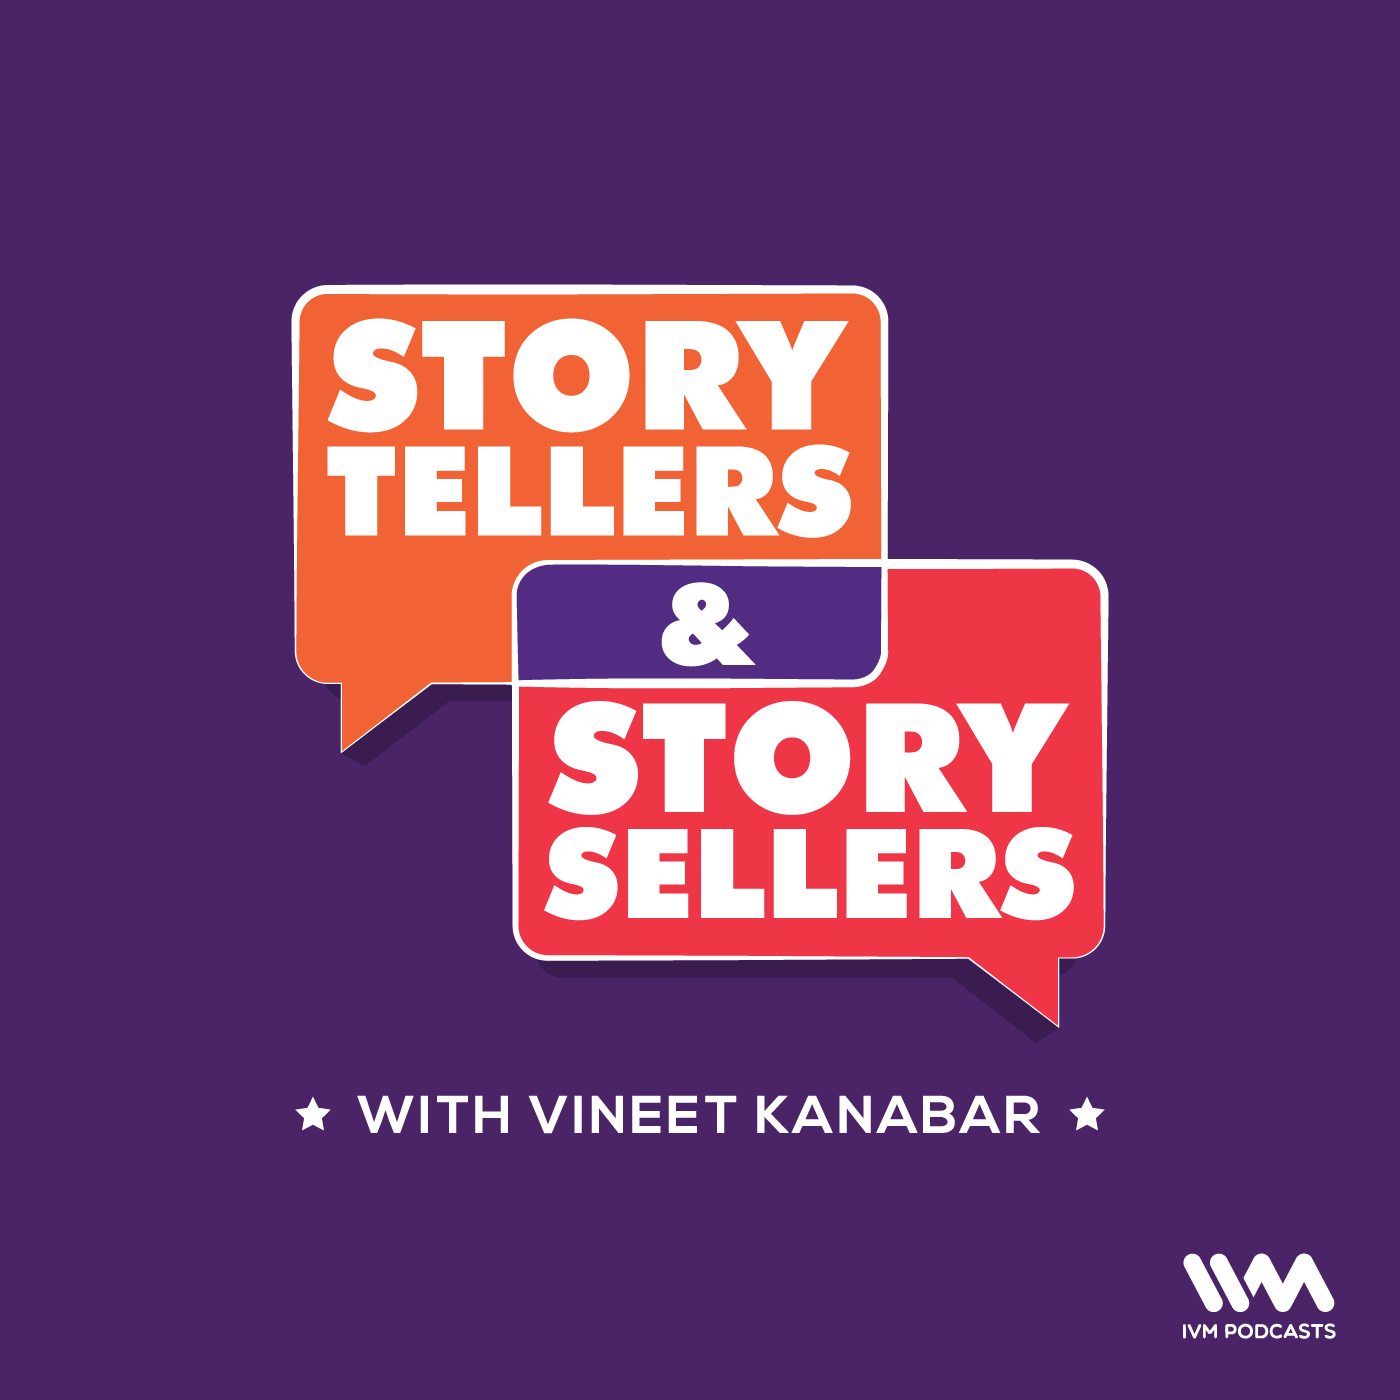 Story Tellers and Story Sellers |